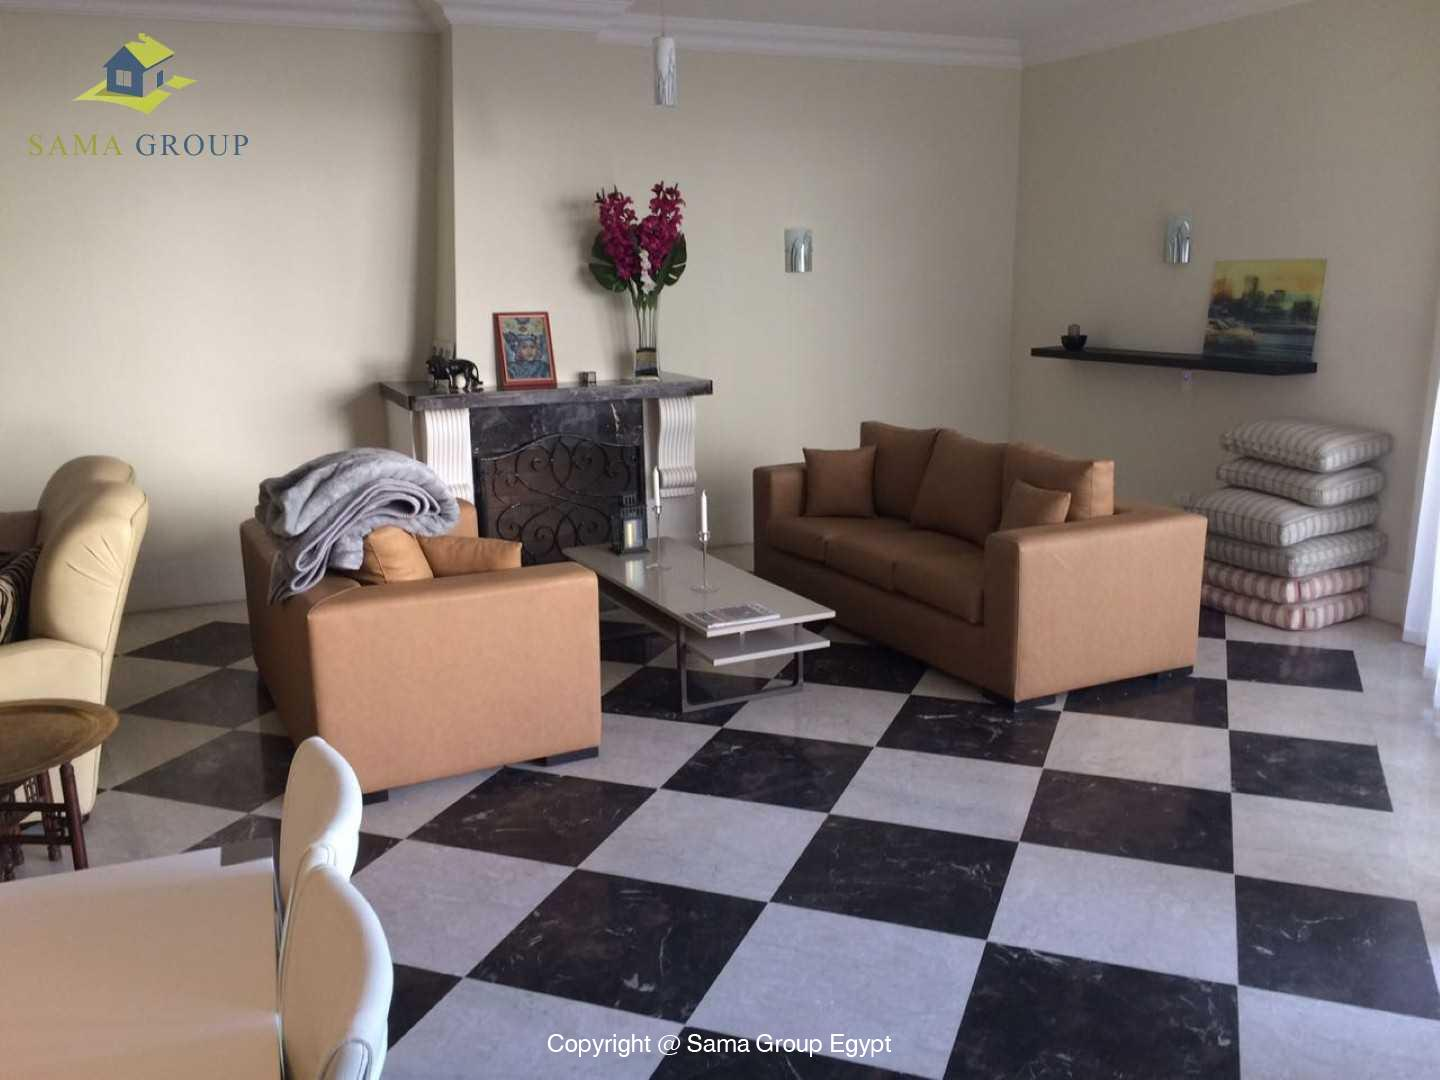 Apartment With Pool For Rent In Maadi Sarayat,Modern Furnished,Apartment NO #4